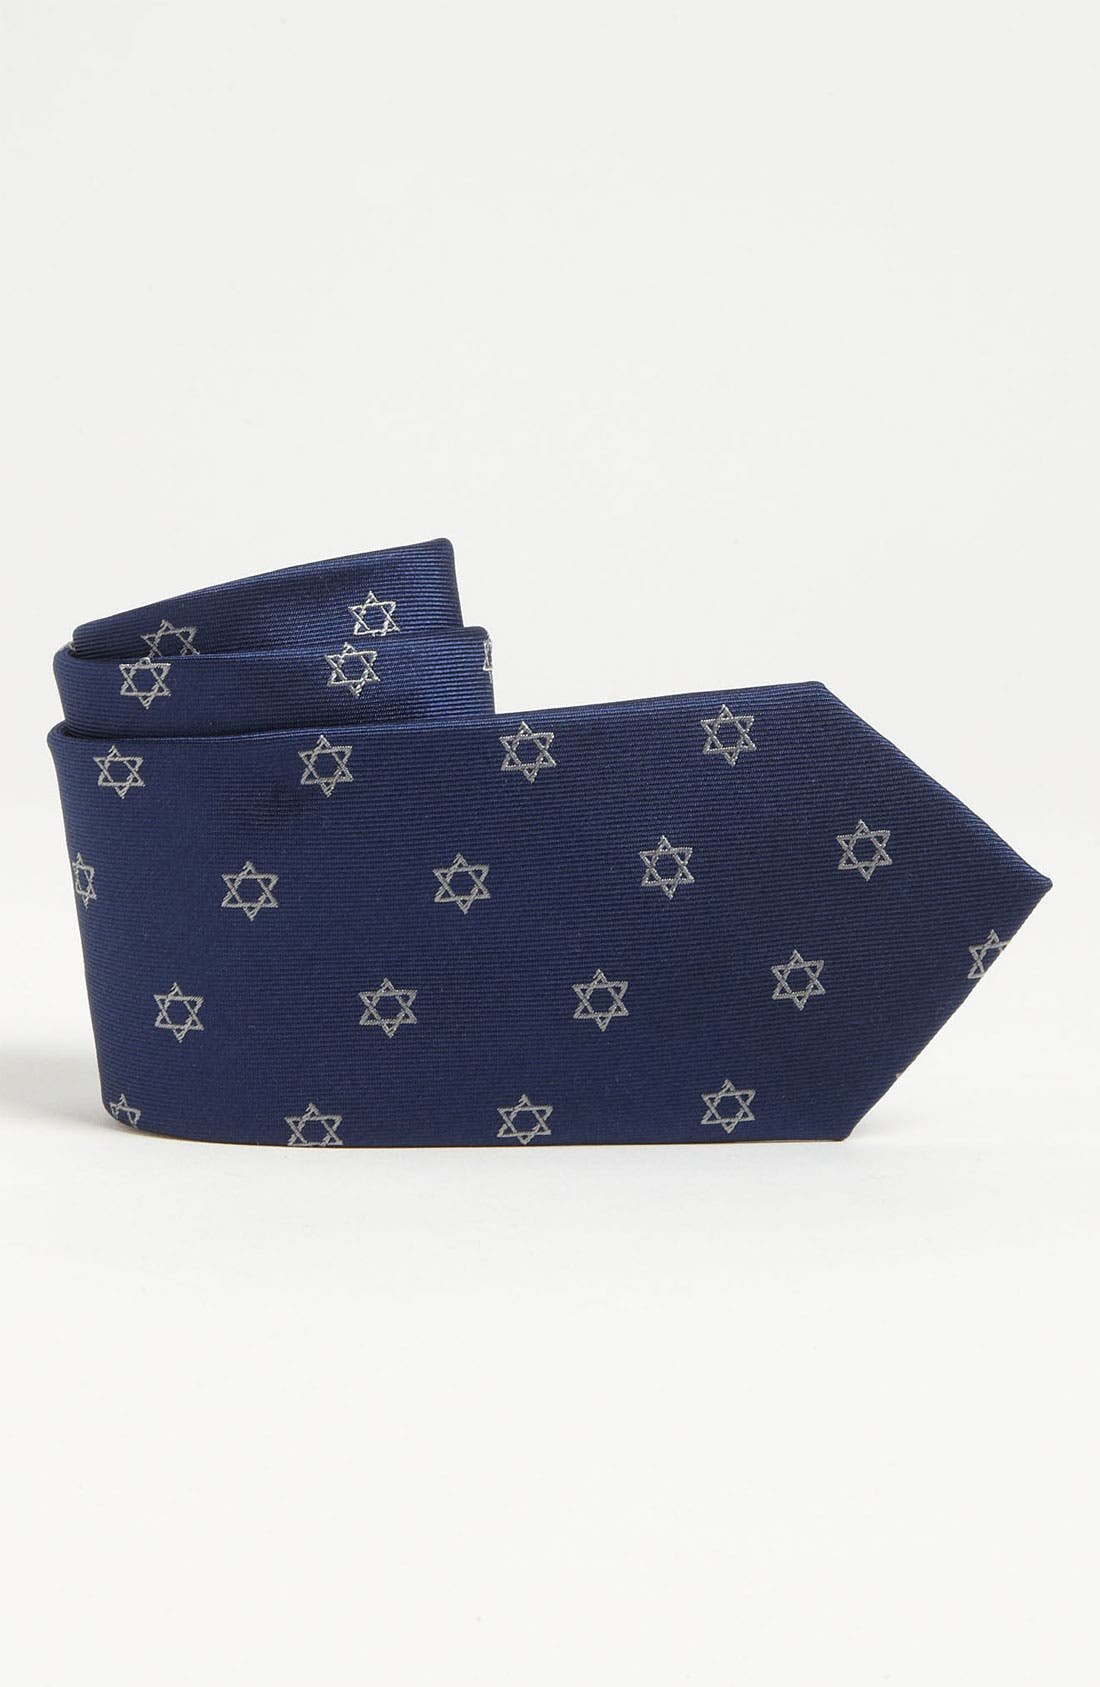 Alternate Image 1 Selected - Nordstrom Woven Silk Tie (Little Boys)